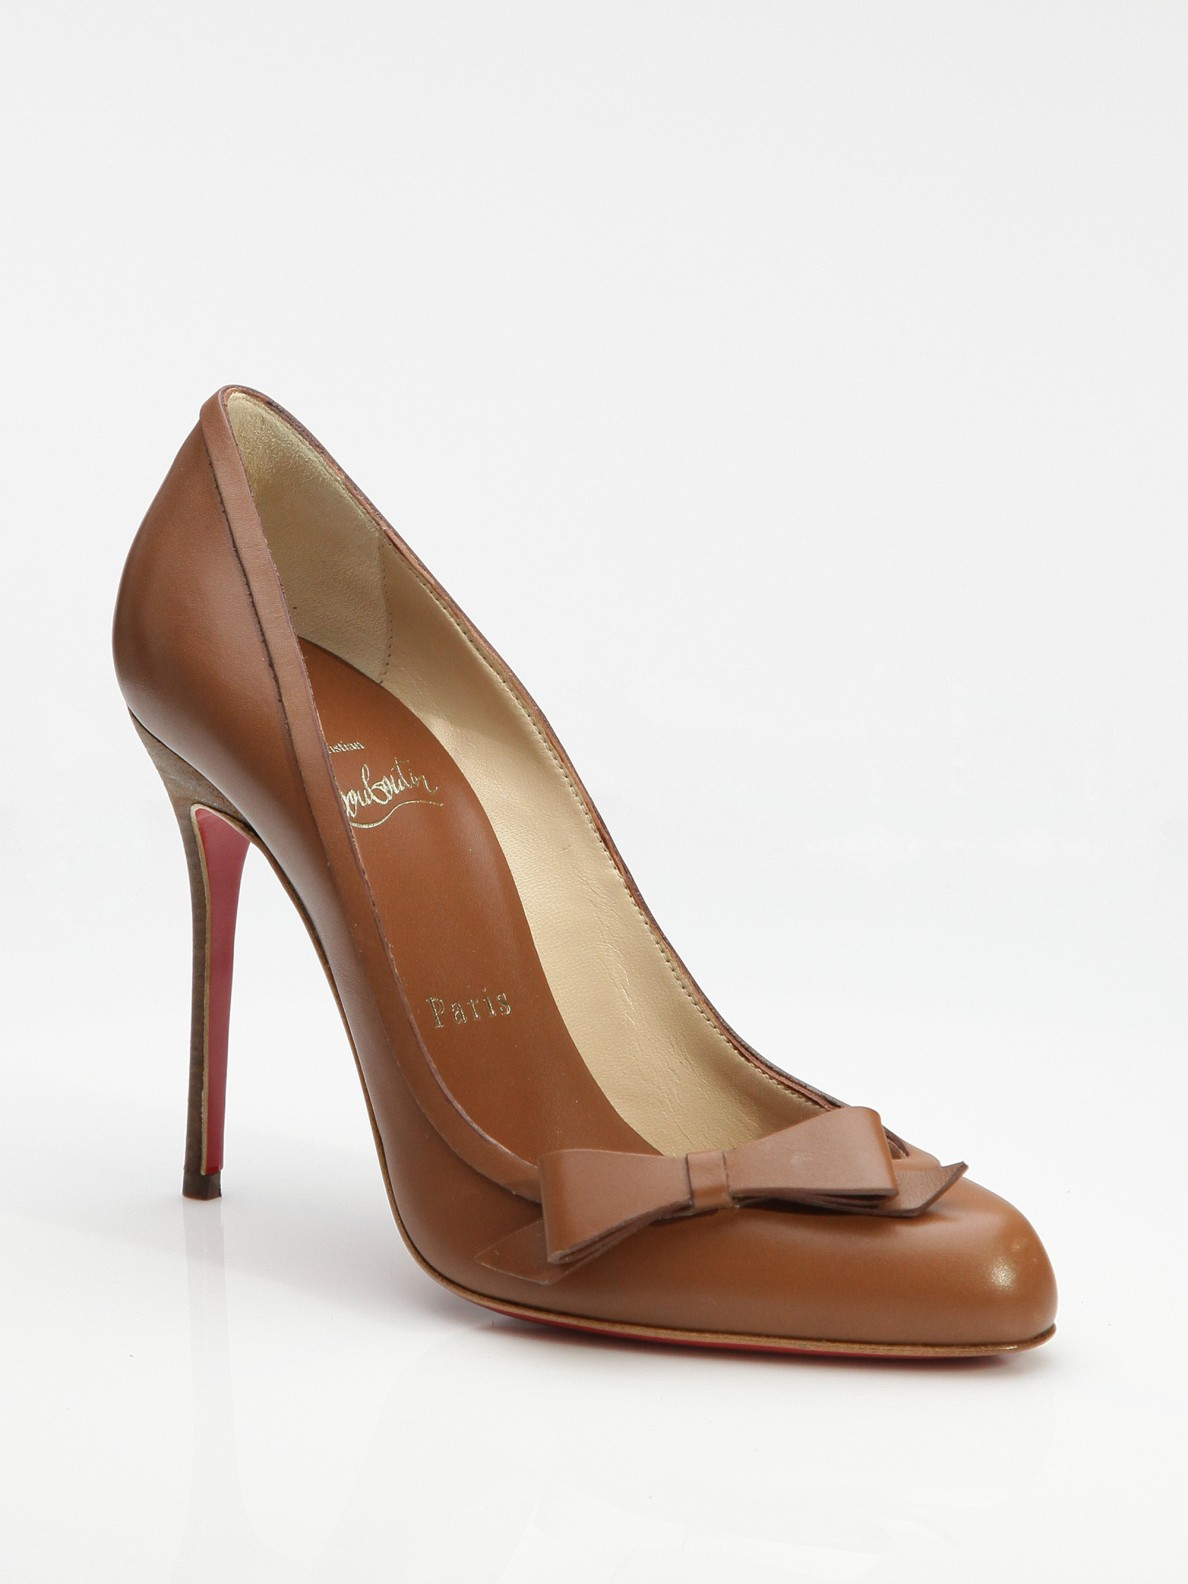 finest selection fce44 d5606 greece christian louboutin brown pumps 5e6f0 e3937